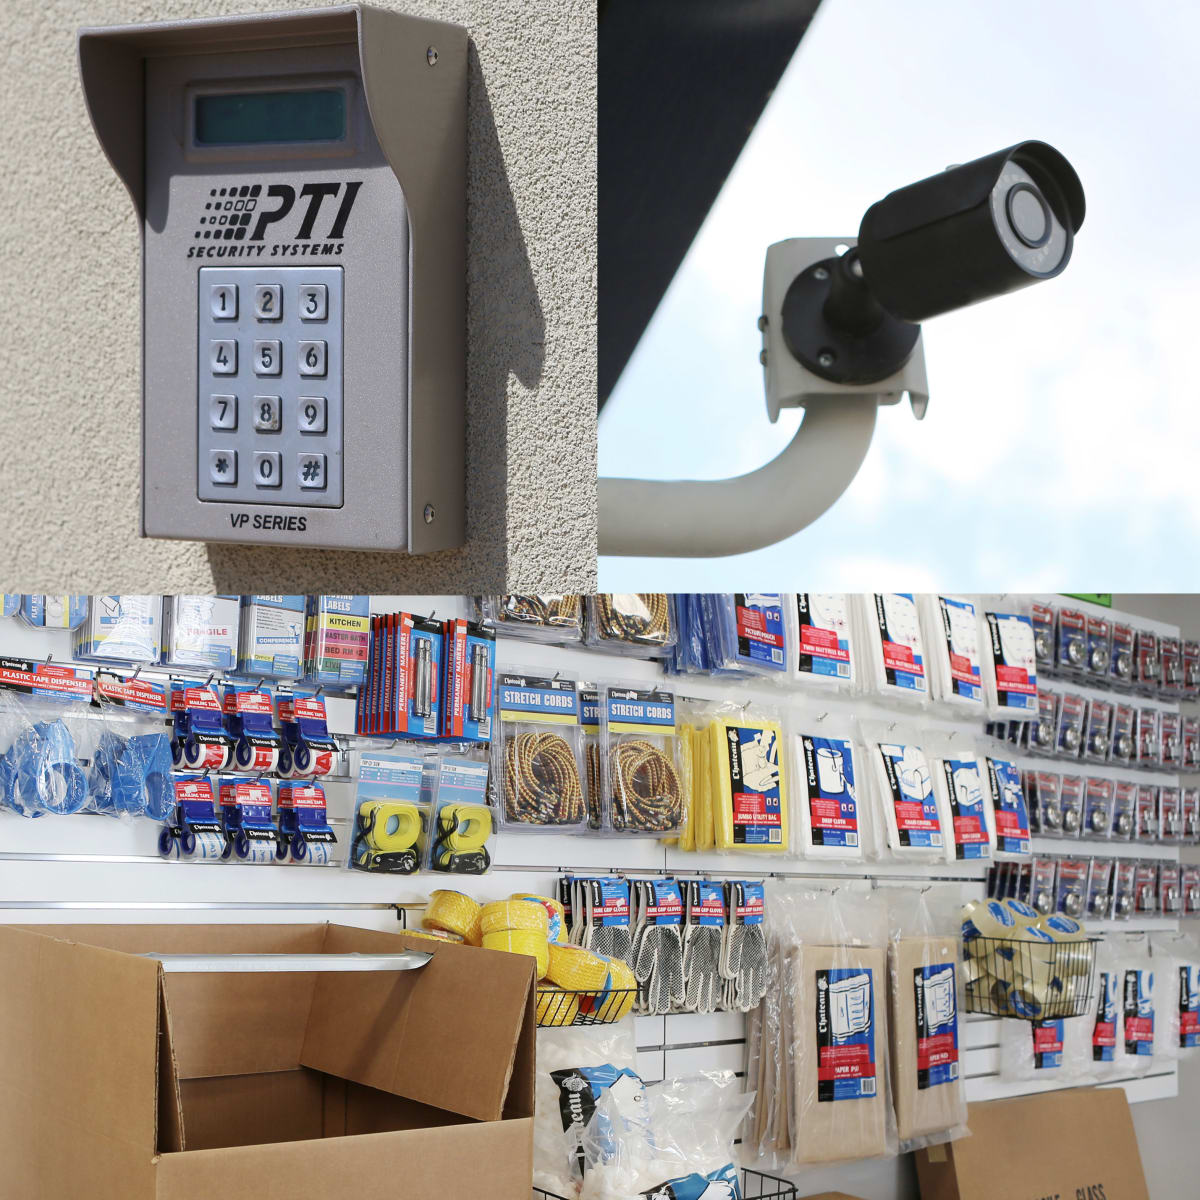 We provide 24 hour security monitoring and sell various moving and packing supplies at Midgard Self Storage in Bradenton, Florida